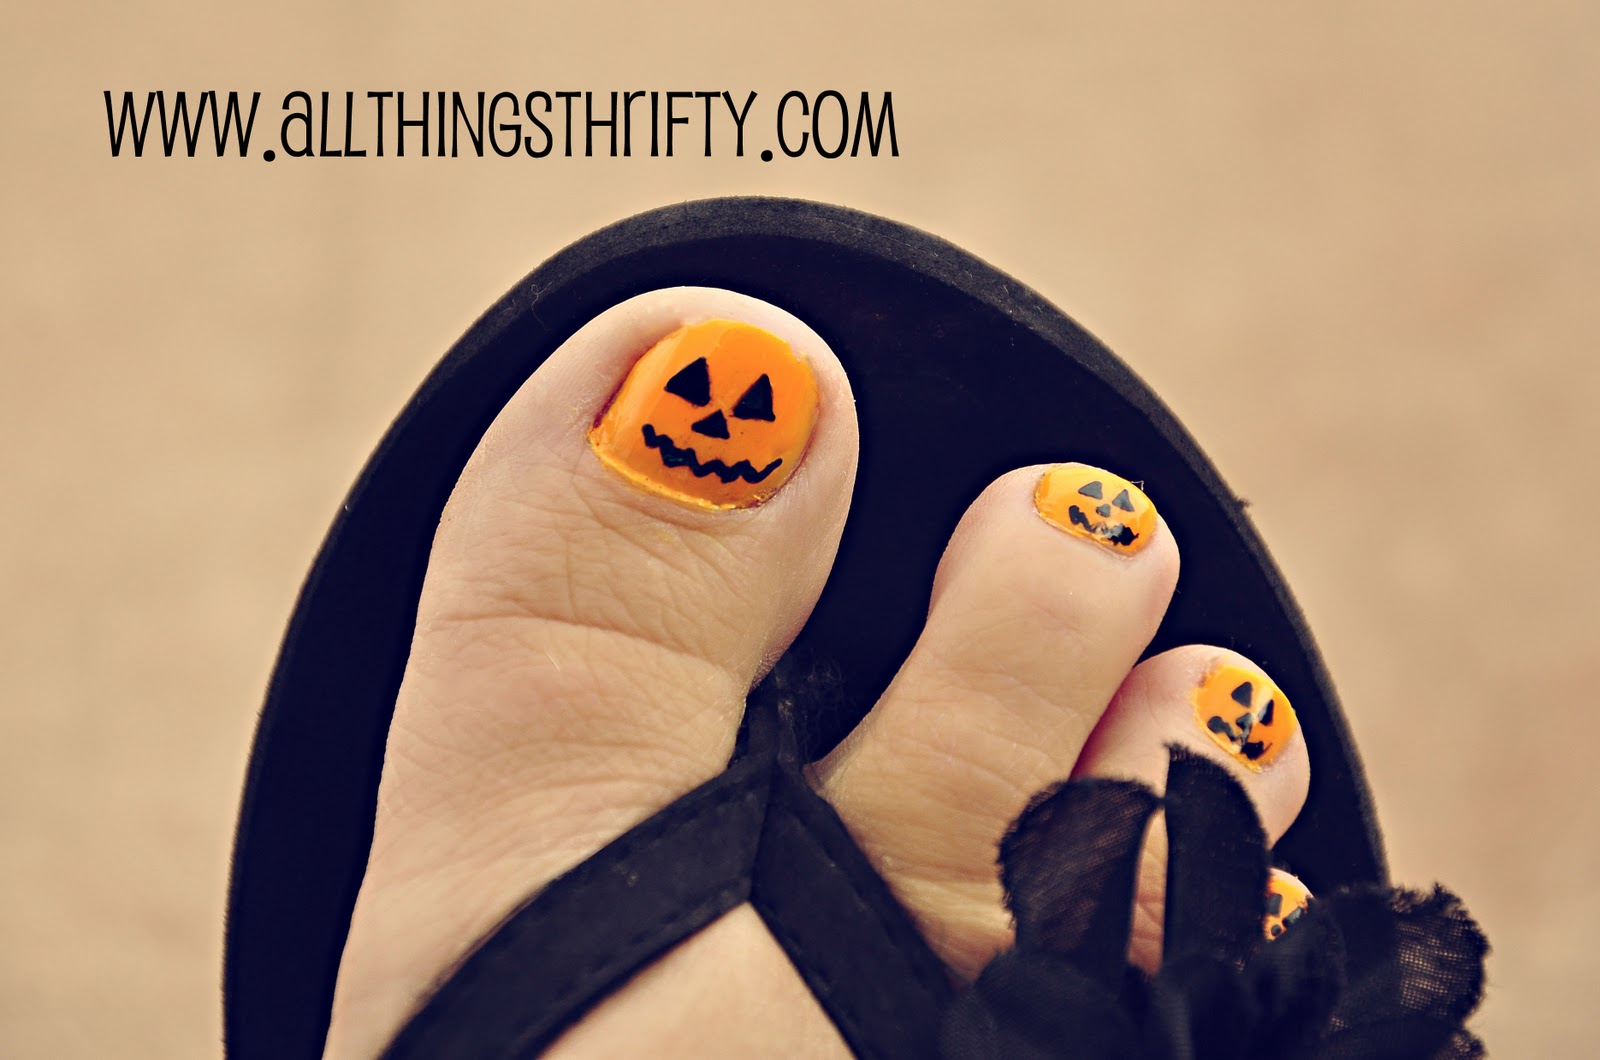 Childrenhairstyles22: Kids Halloween Nail Art!